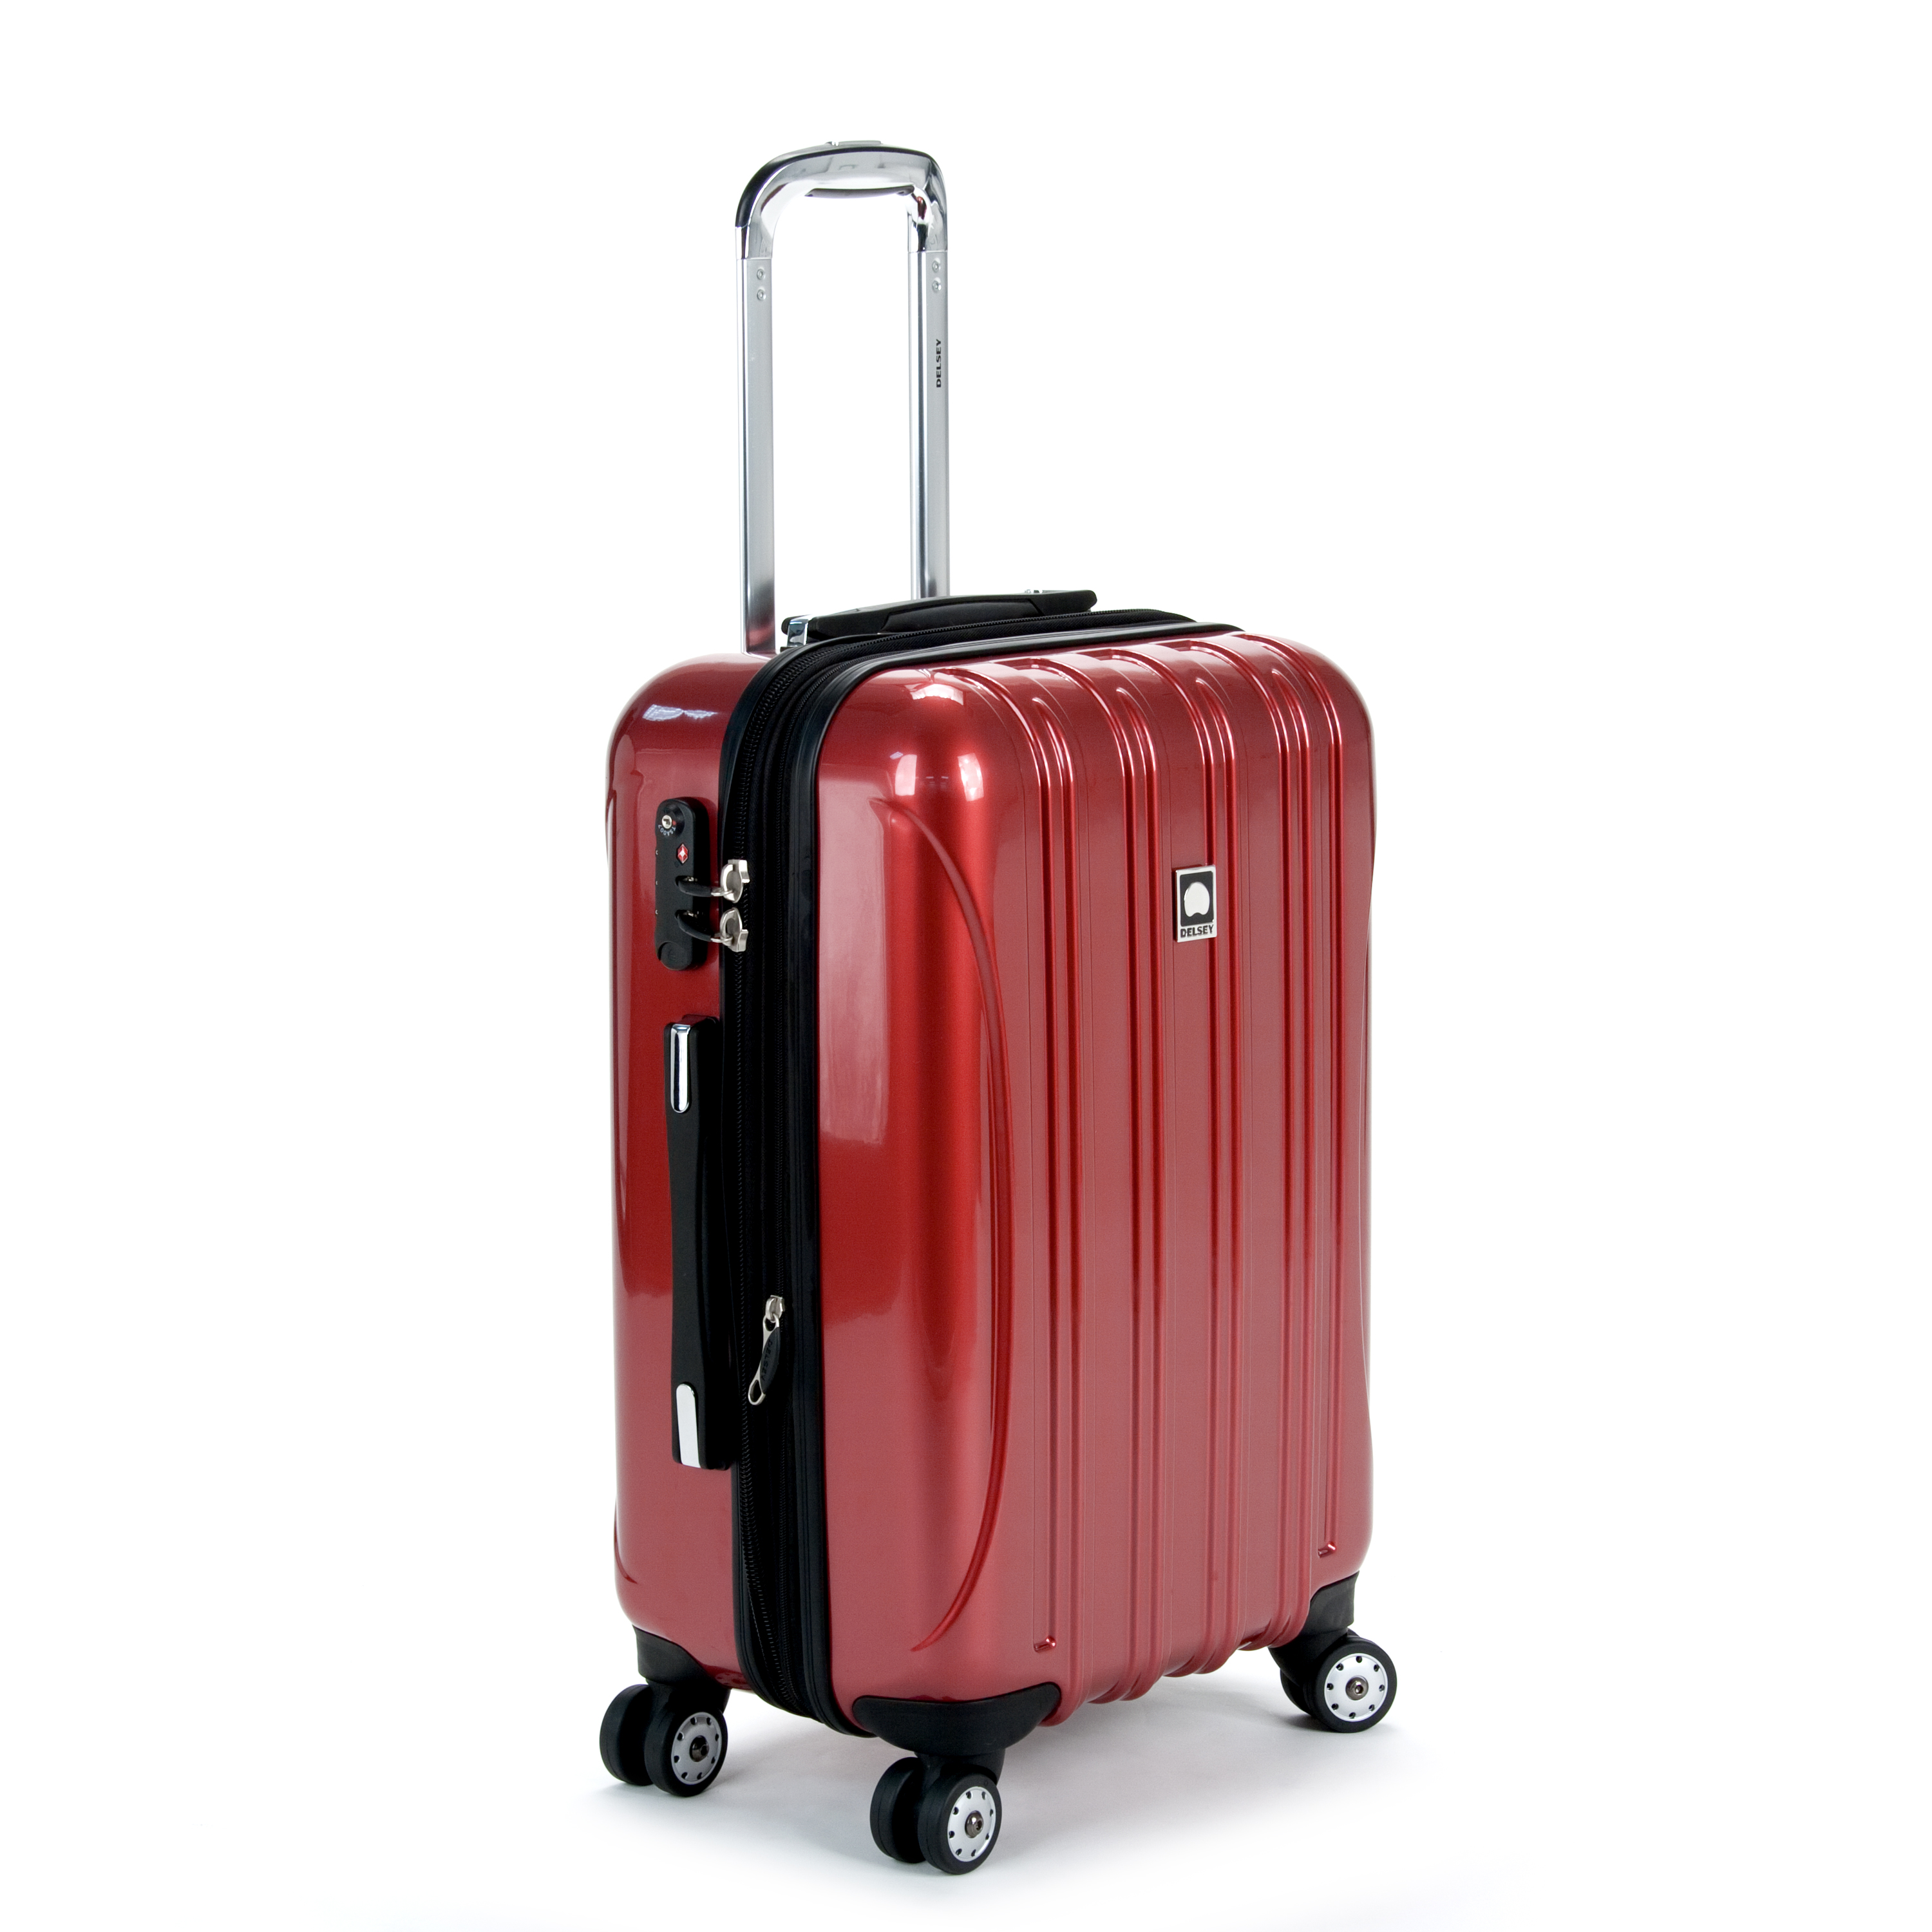 delsey luggage helium aero 2 piece spinner luggage set 21 and 29 ebay. Black Bedroom Furniture Sets. Home Design Ideas